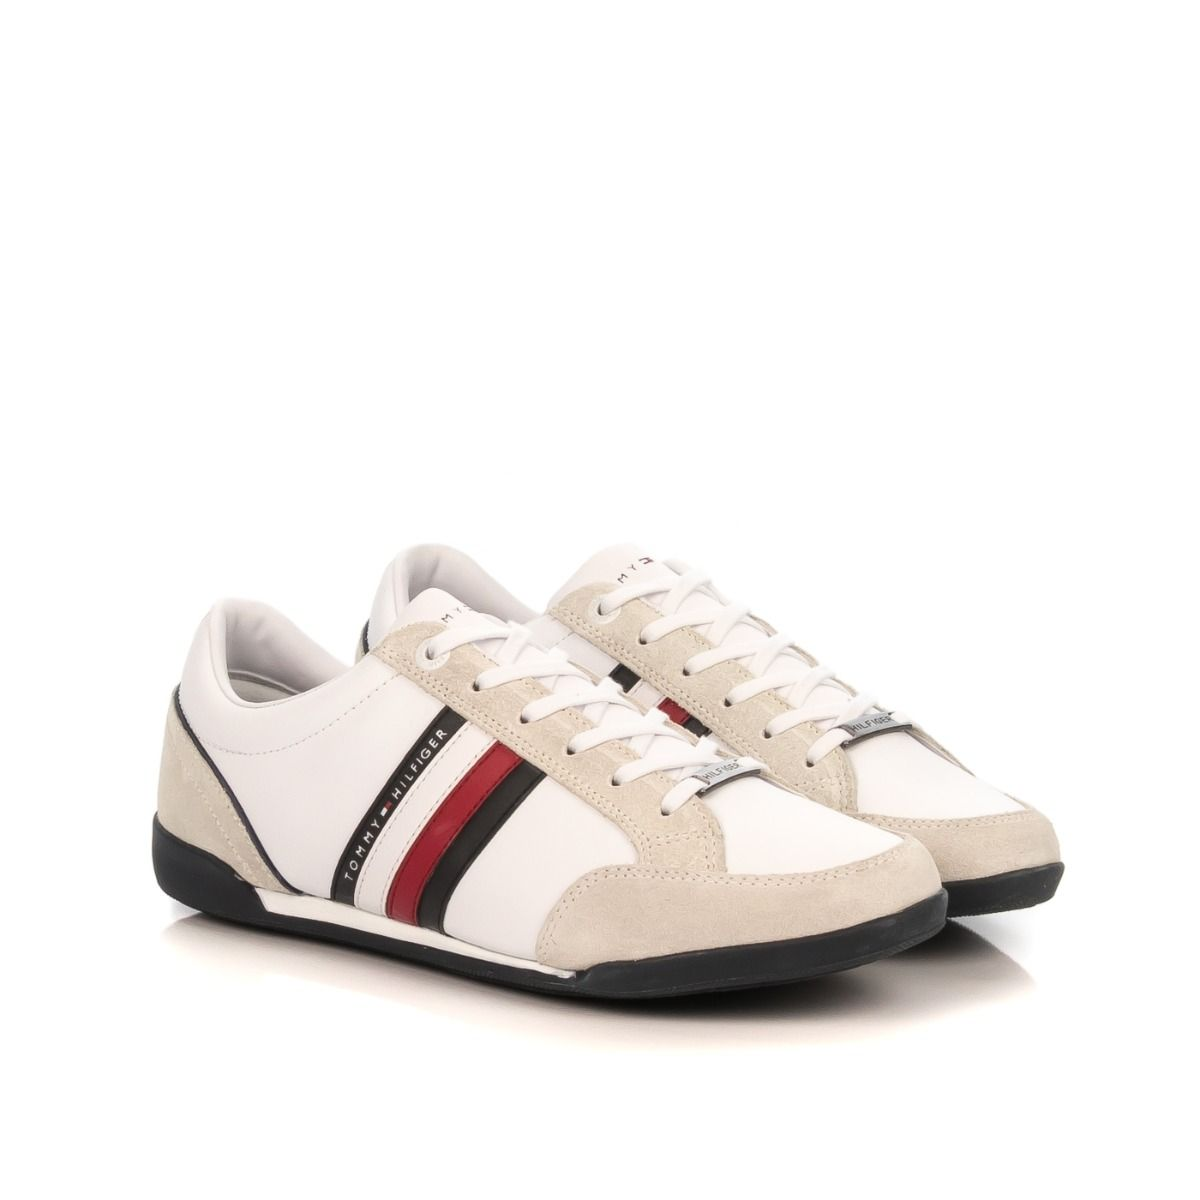 Sneakers uomo|TOMMY HILFIGER 2046 100 similpelle bianco|Shop